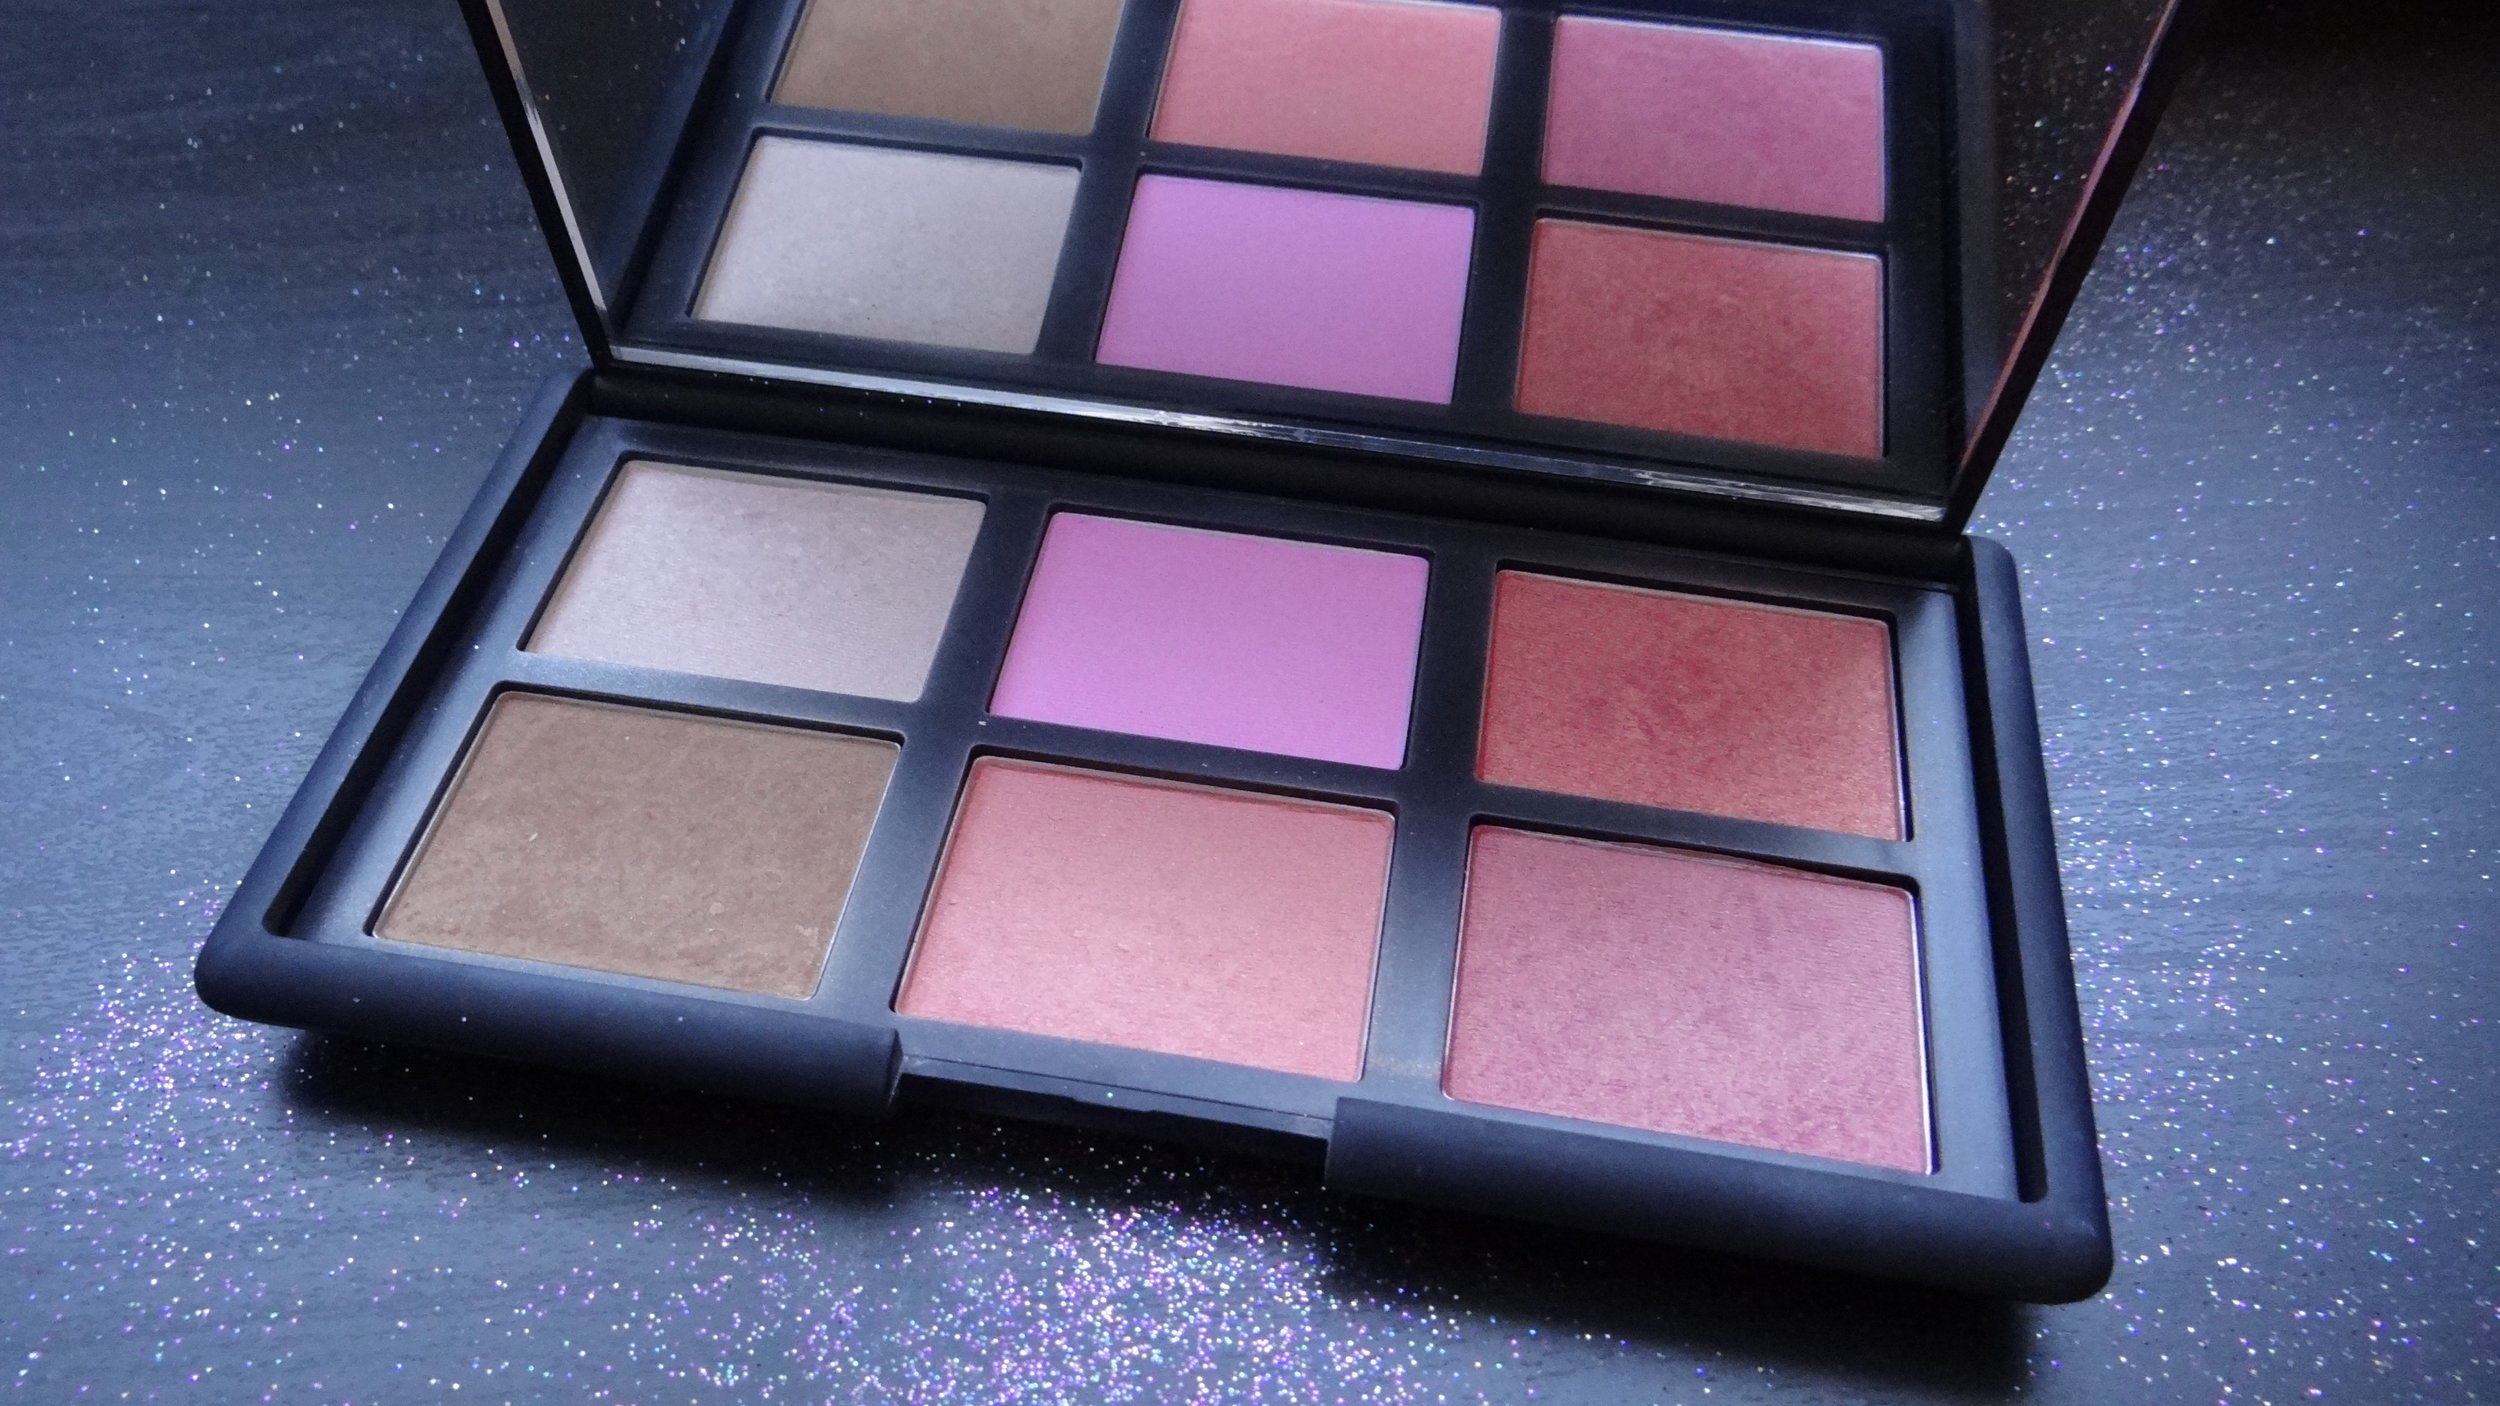 Top 5 Cruelty-Free Products: Makeup Edition, #1: Nars Blushes - Artistry by Jacquie, Ottawa Makeup Artist